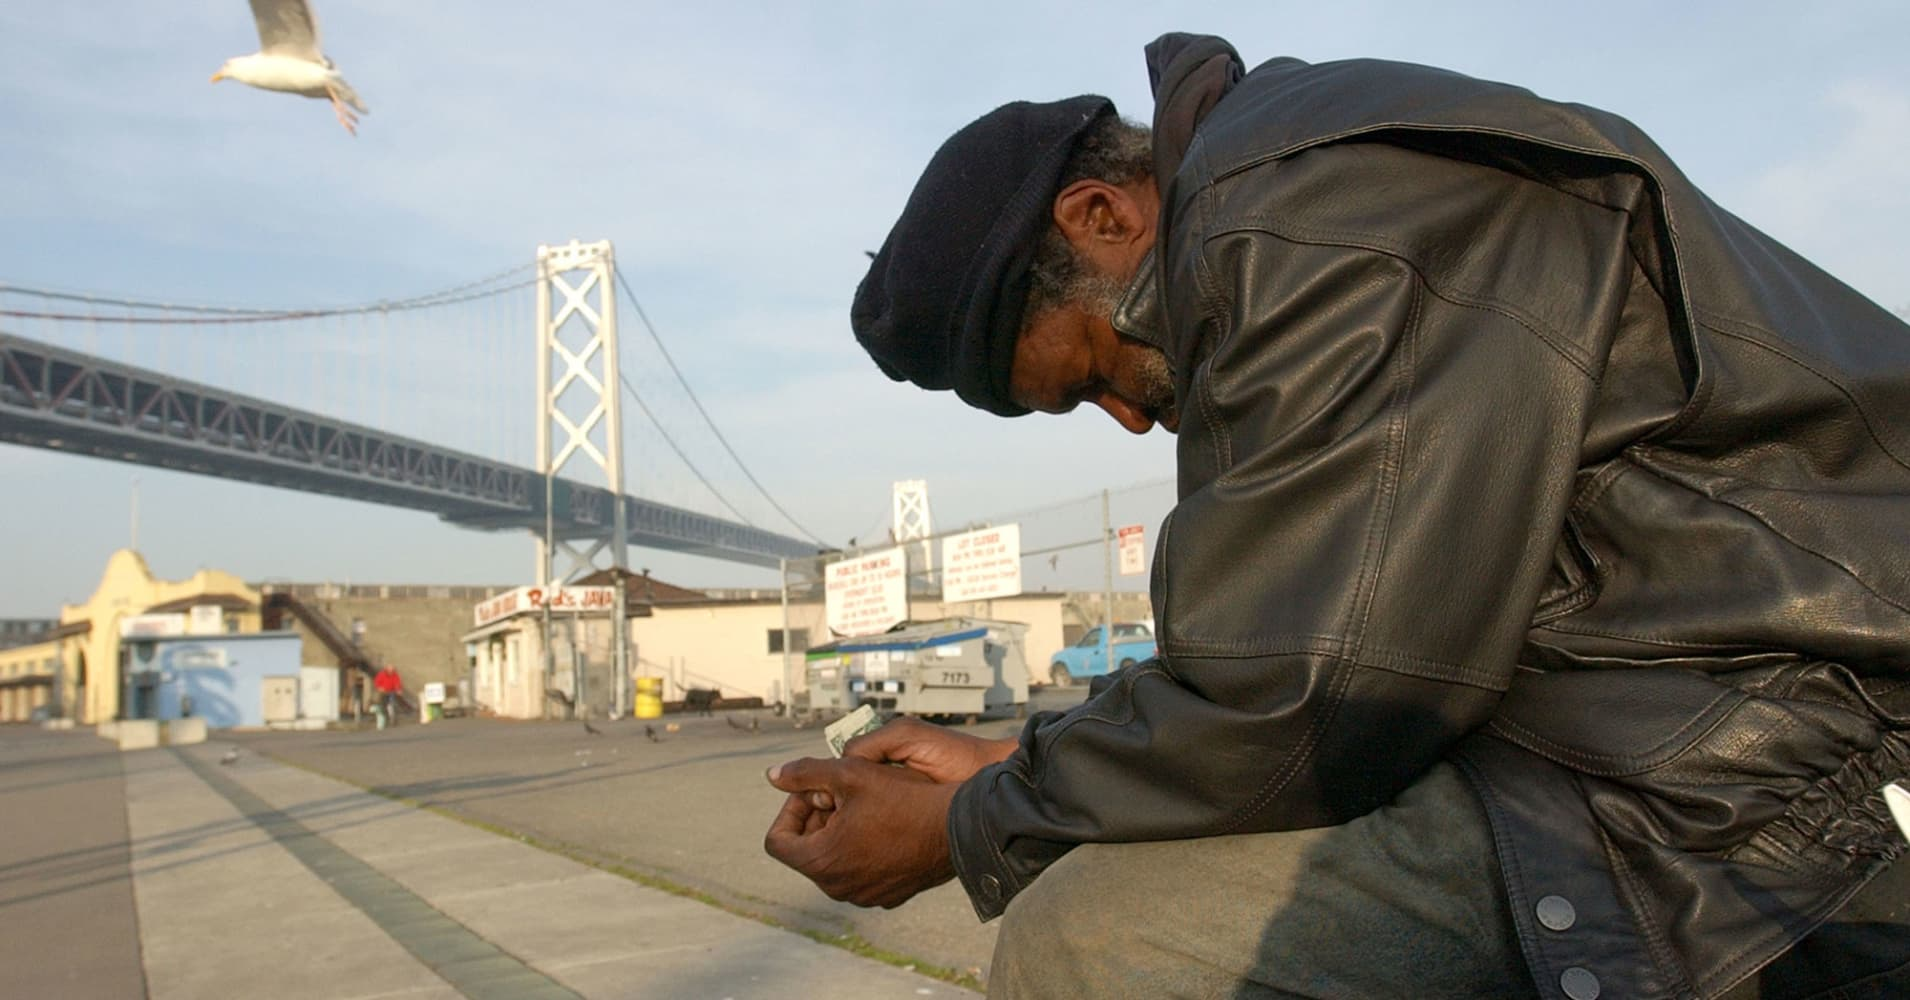 It's time for tech to fix the wealth inequality problem in the Bay Area, says start-up CEO